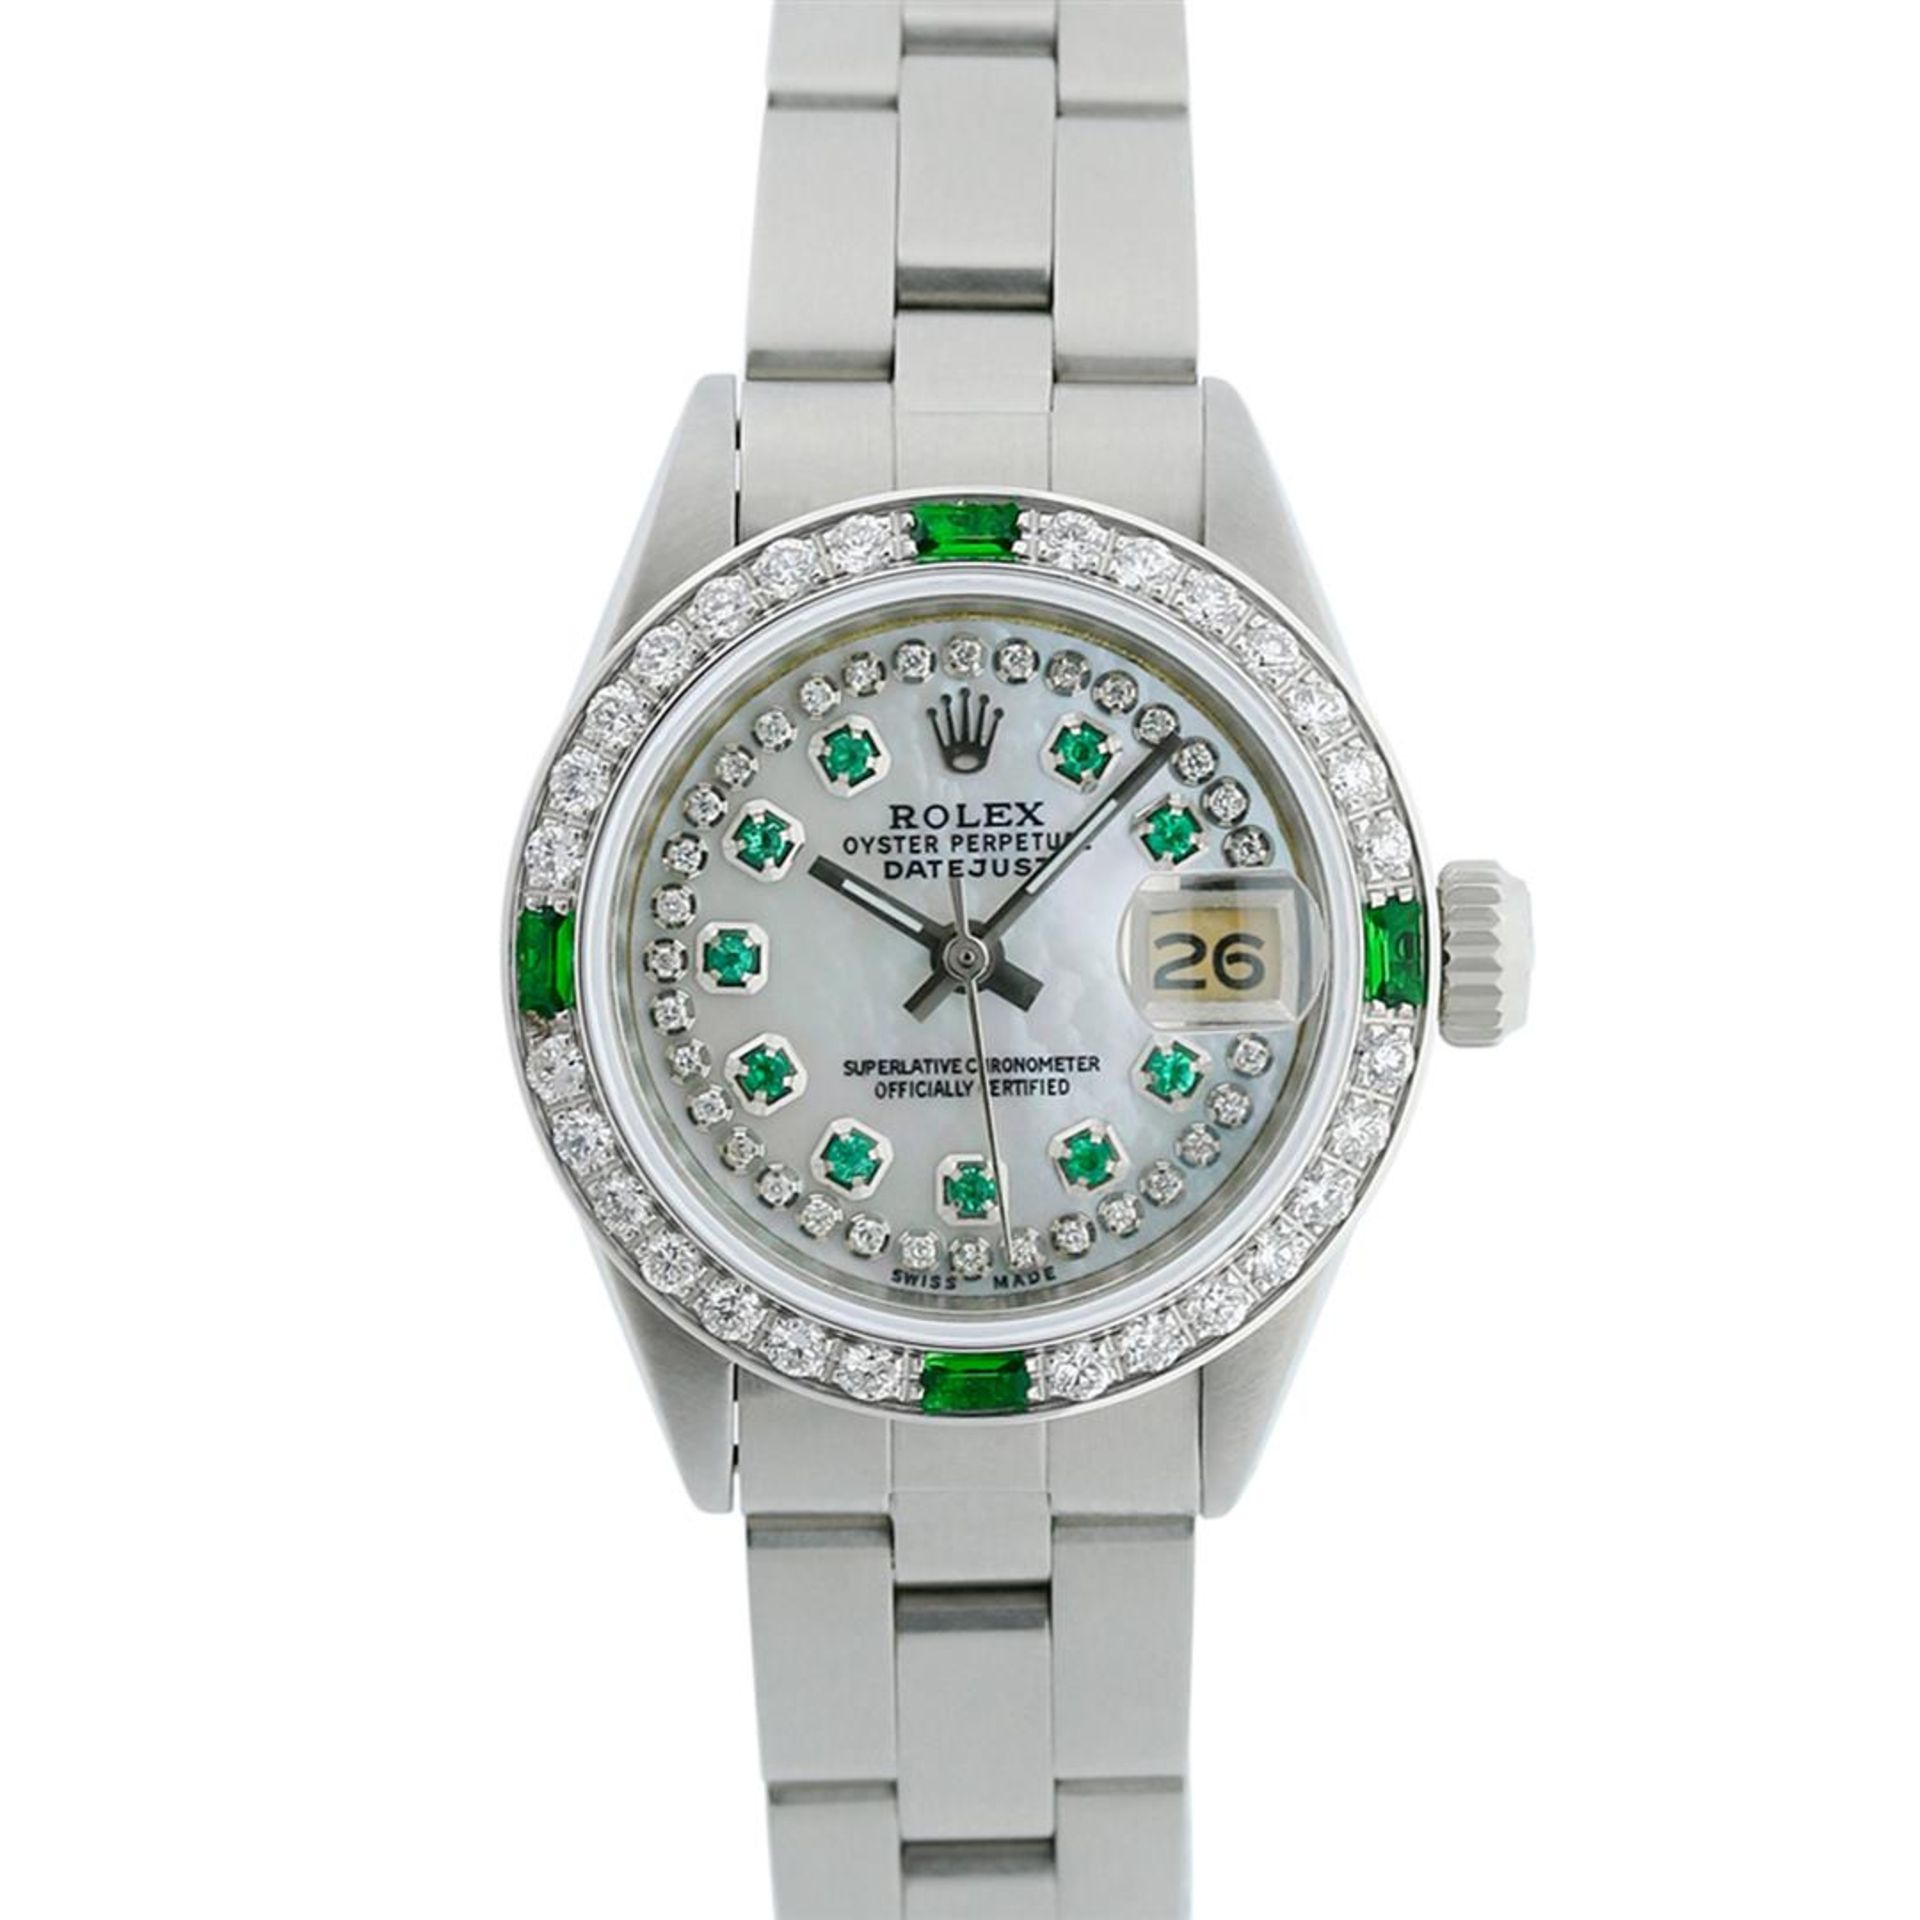 Rolex Ladies Stainless Steel MOP Emerald & Diamond Oyster Perpetaul Datejust Wri - Image 2 of 9